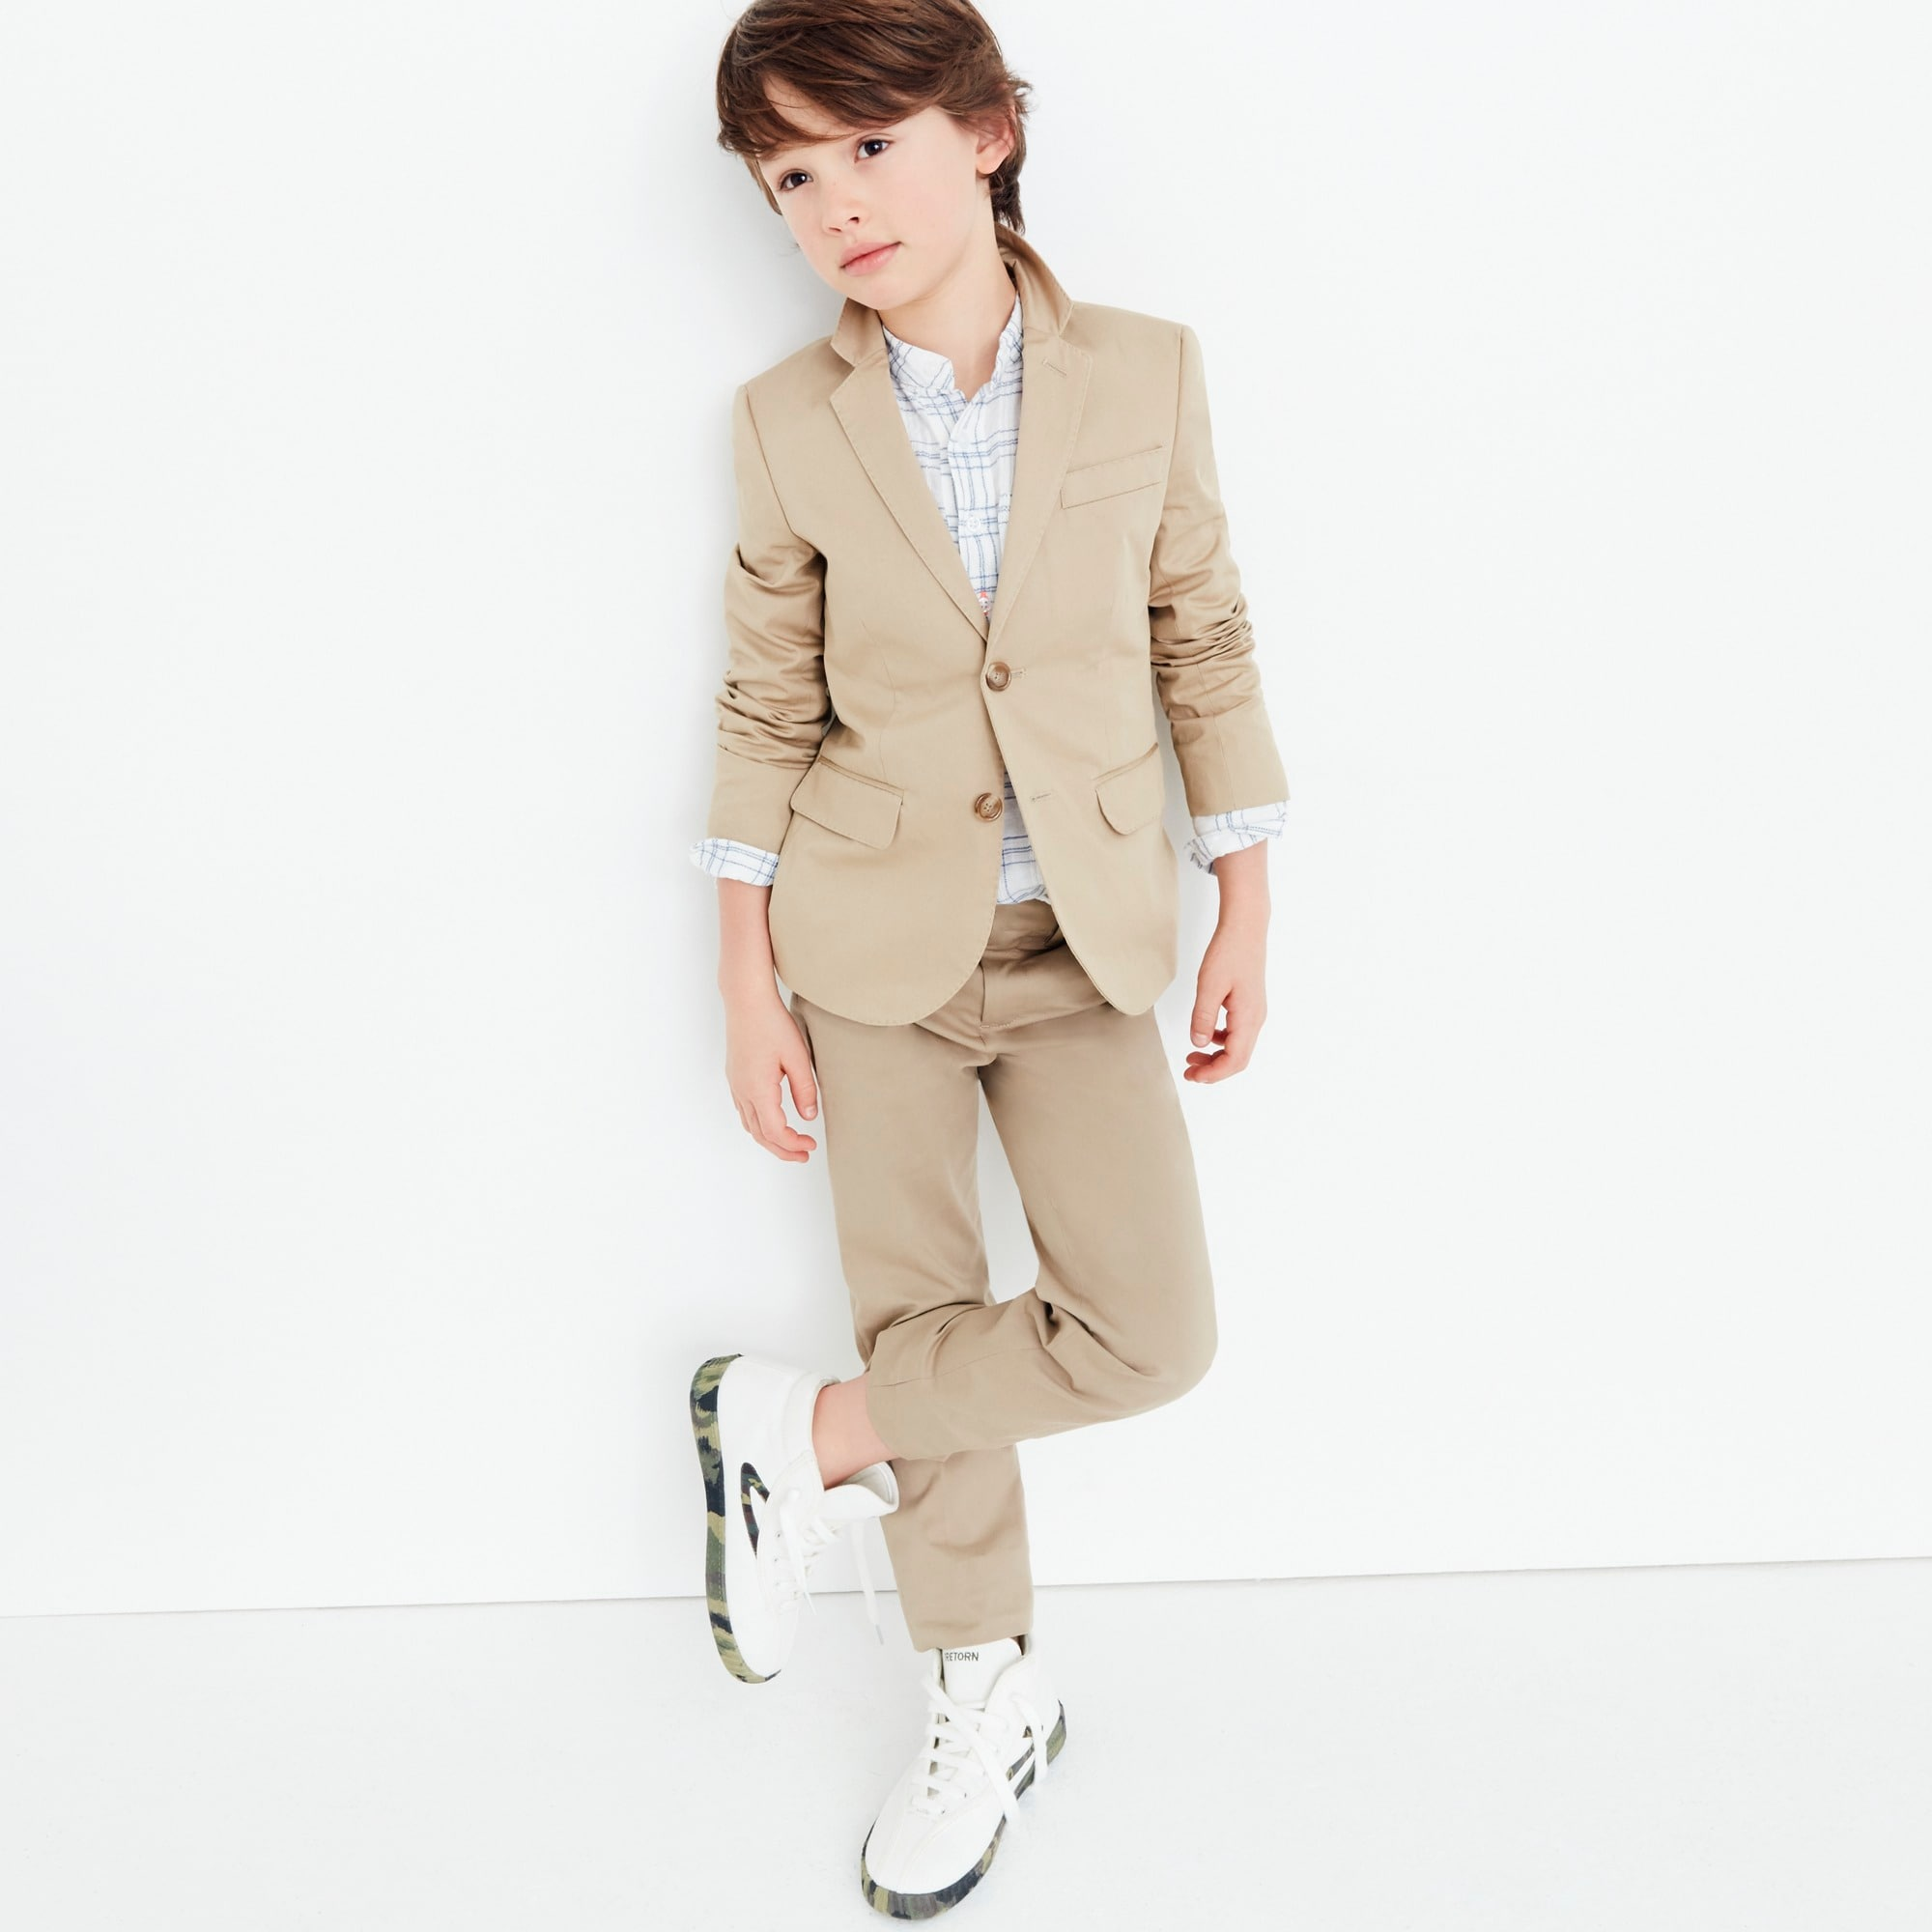 boys Boys' Ludlow suit jacket in Italian stretch chino